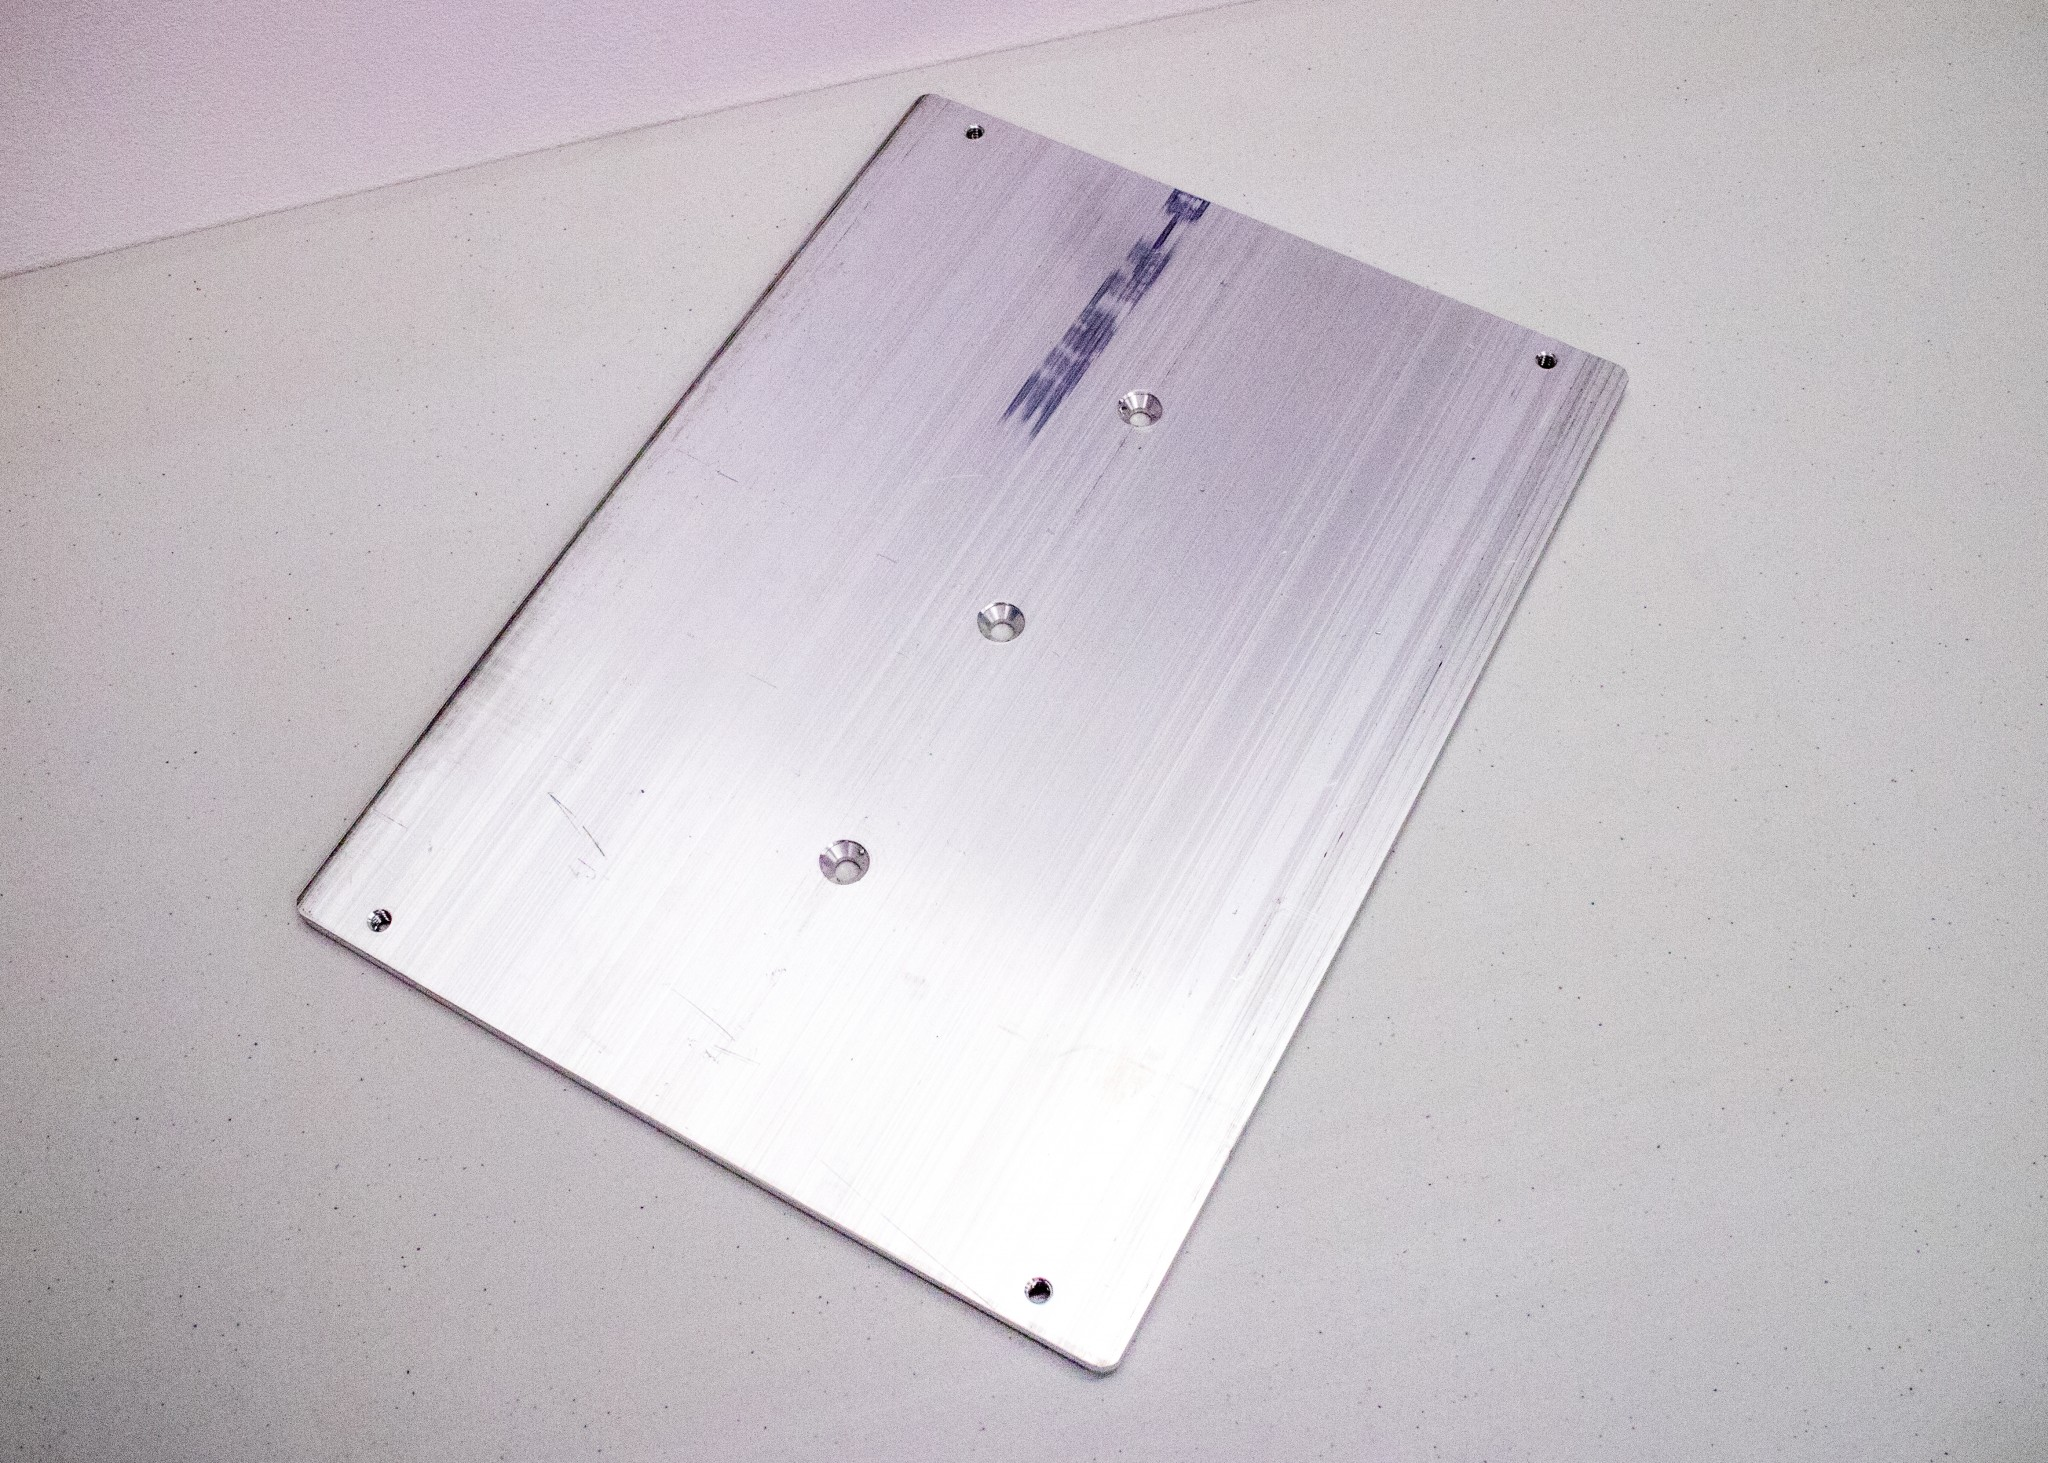 Aluminum Mounting Plate For Tec Remote Boat Lift Warehouse